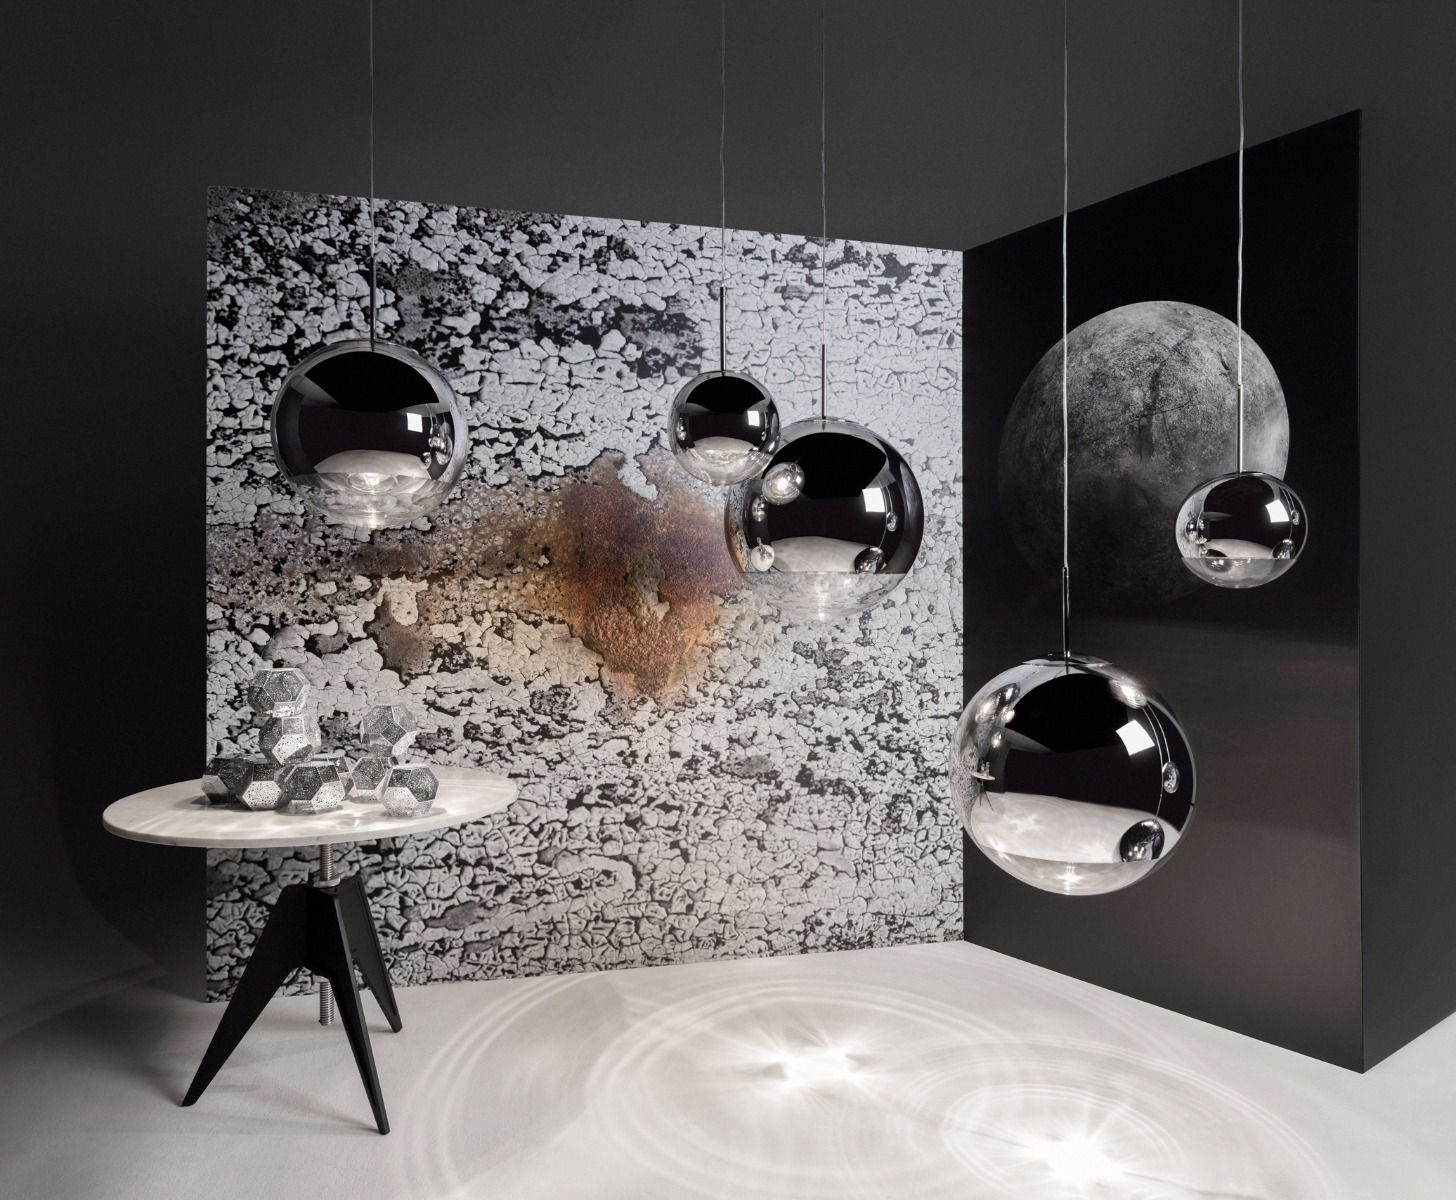 mirror ball 50cm. Black Bedroom Furniture Sets. Home Design Ideas